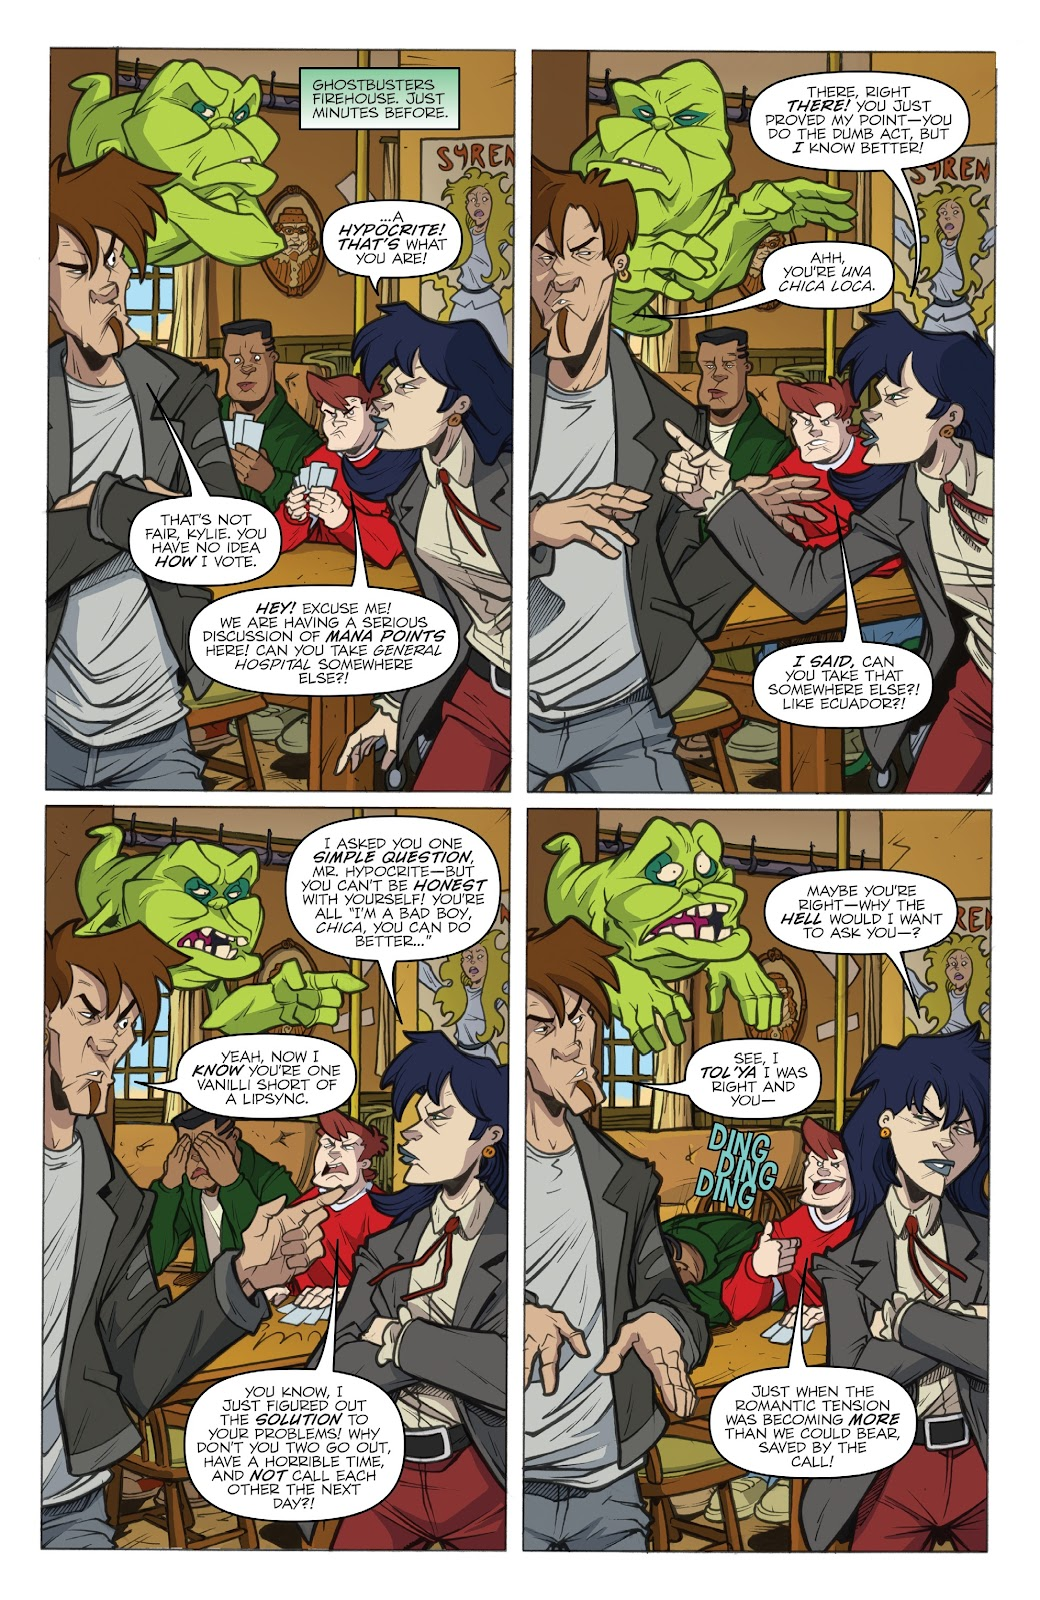 Read online Ghostbusters 35th Anniversary: Extreme comic -  Issue # Full - 8